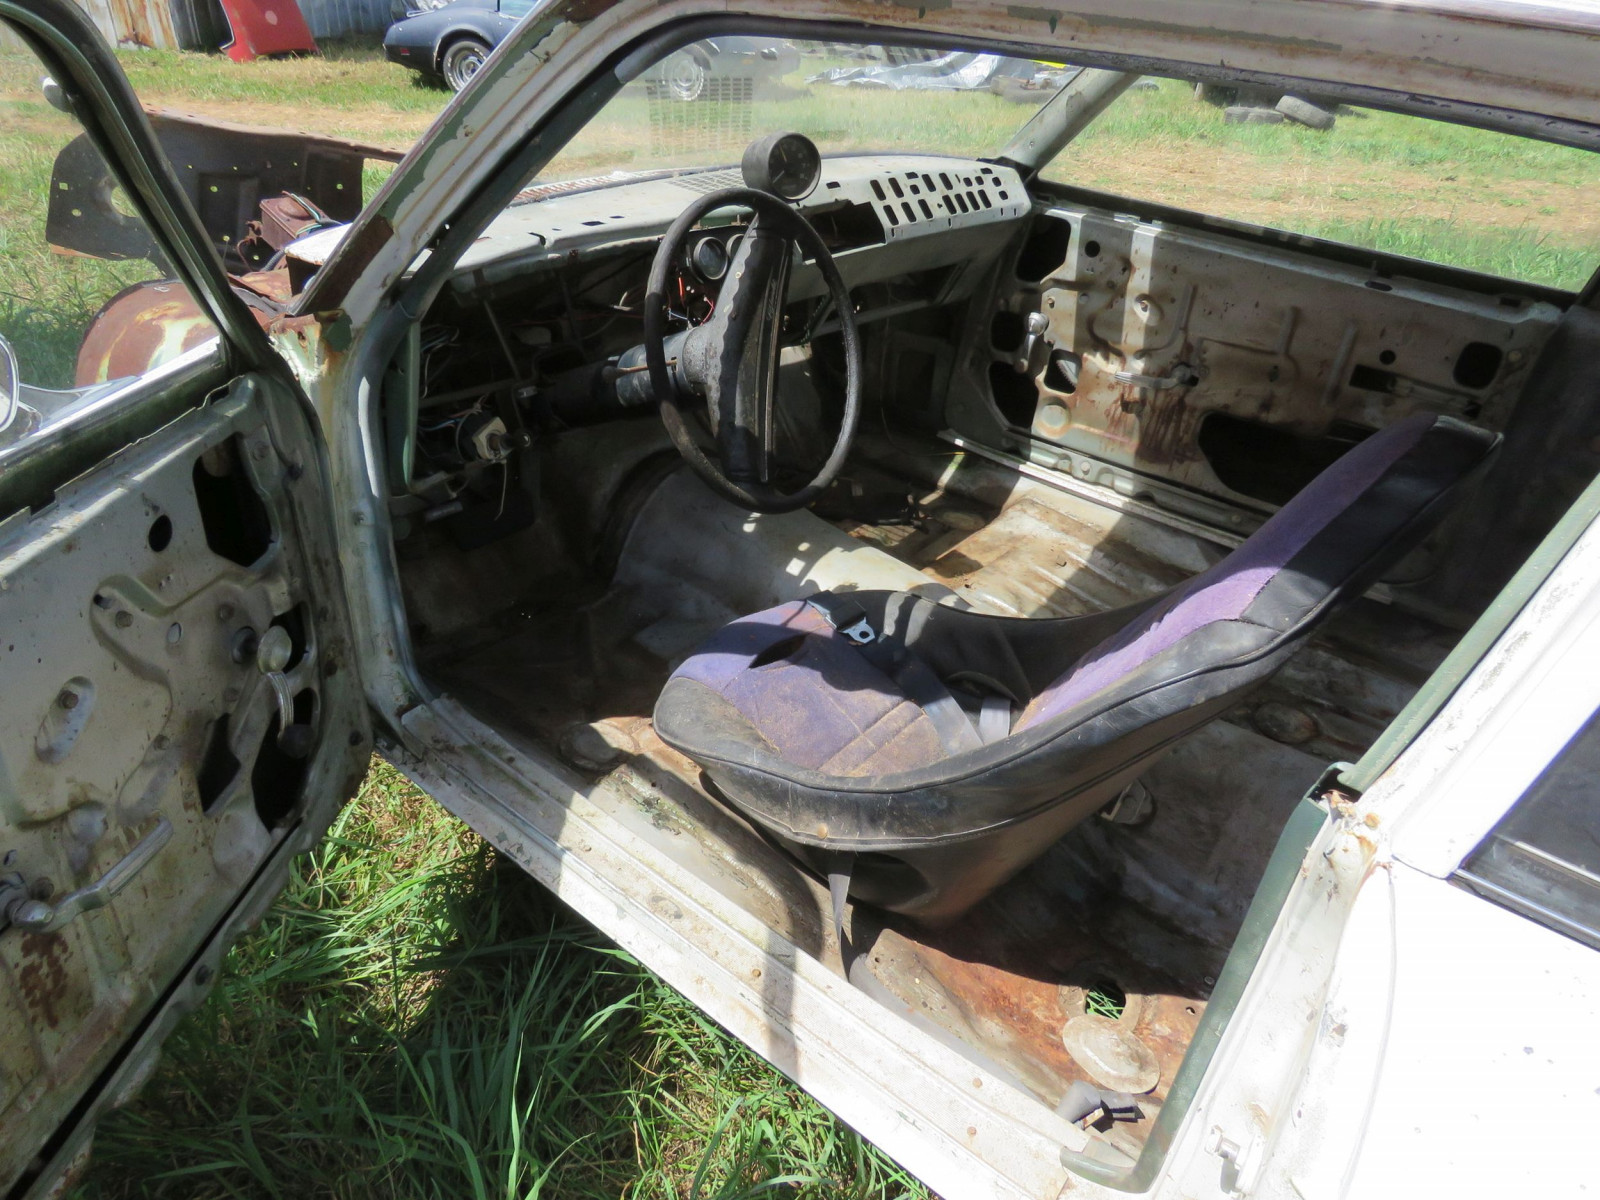 1973 Chevrolet Nova Body for Restore or Parts - Image 6